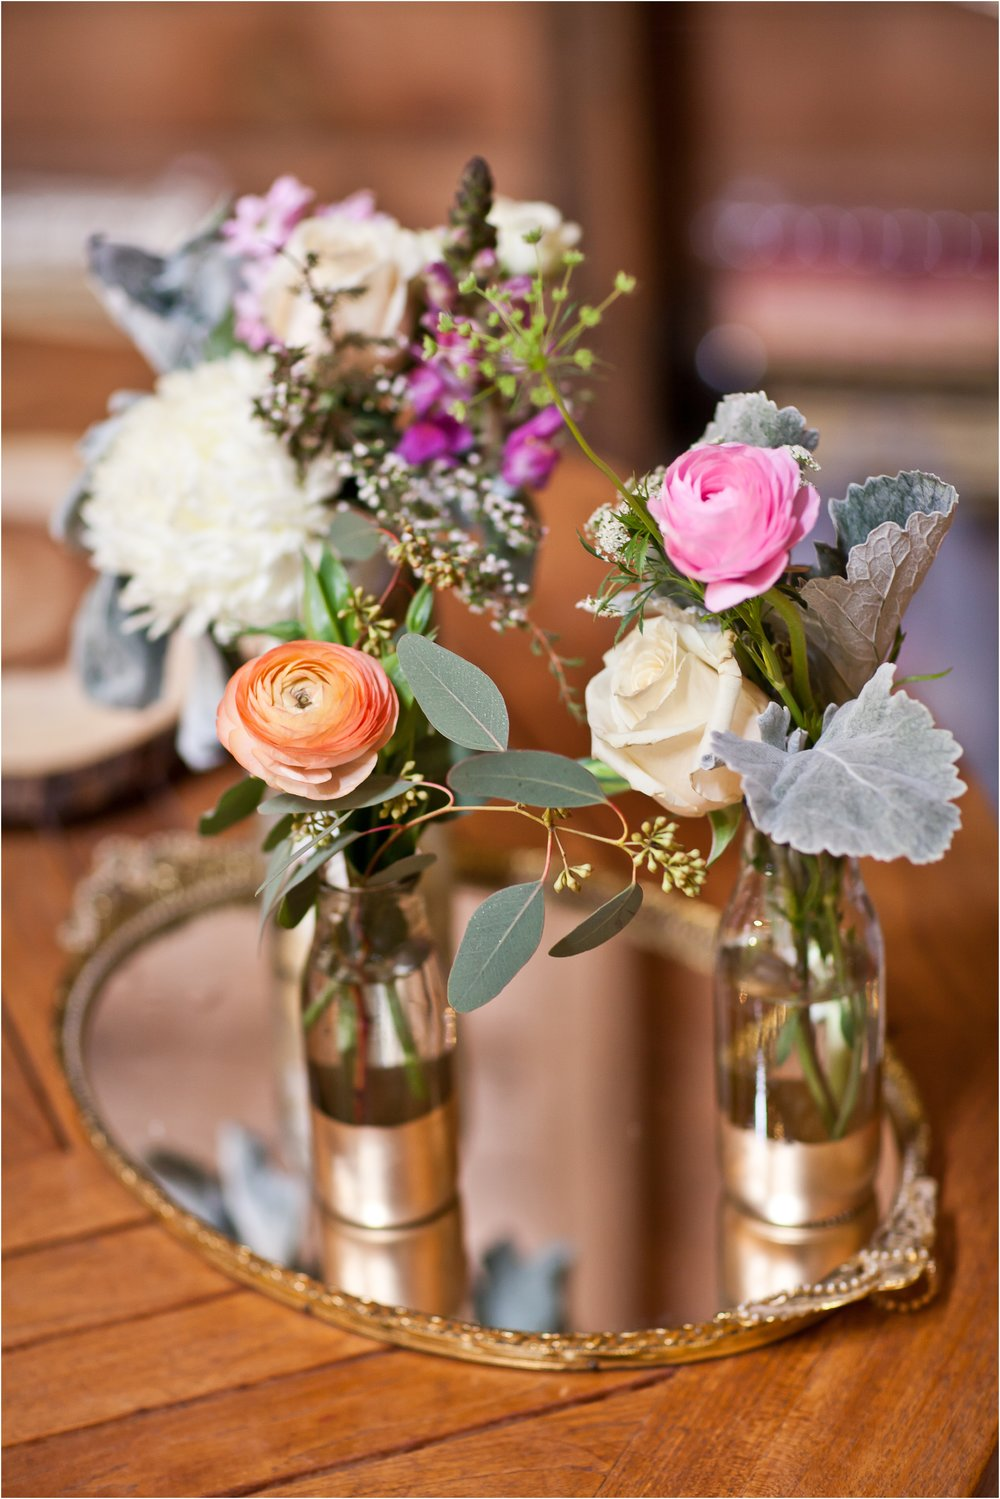 durango-co-wedding-flowers.jpg